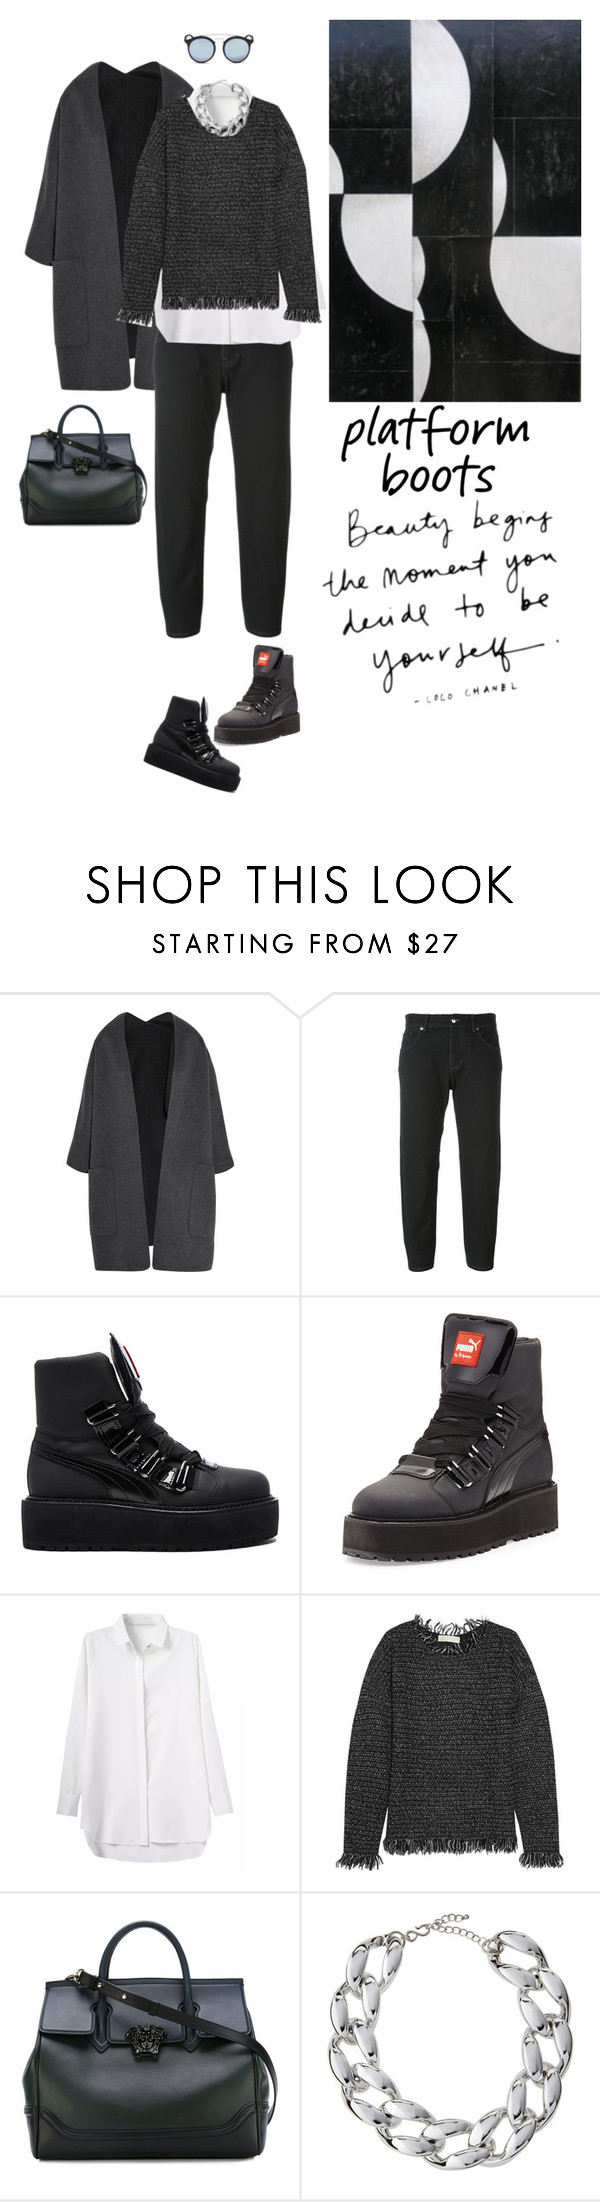 """""""Untitled #997"""" by tamara-40 ❤ liked on Polyvore featuring Vince, MM6 Maison Margiela, Puma, MICHAEL Michael Kors, Versace, Kenneth Jay Lane, Ray-Ban and PlatformBoots"""